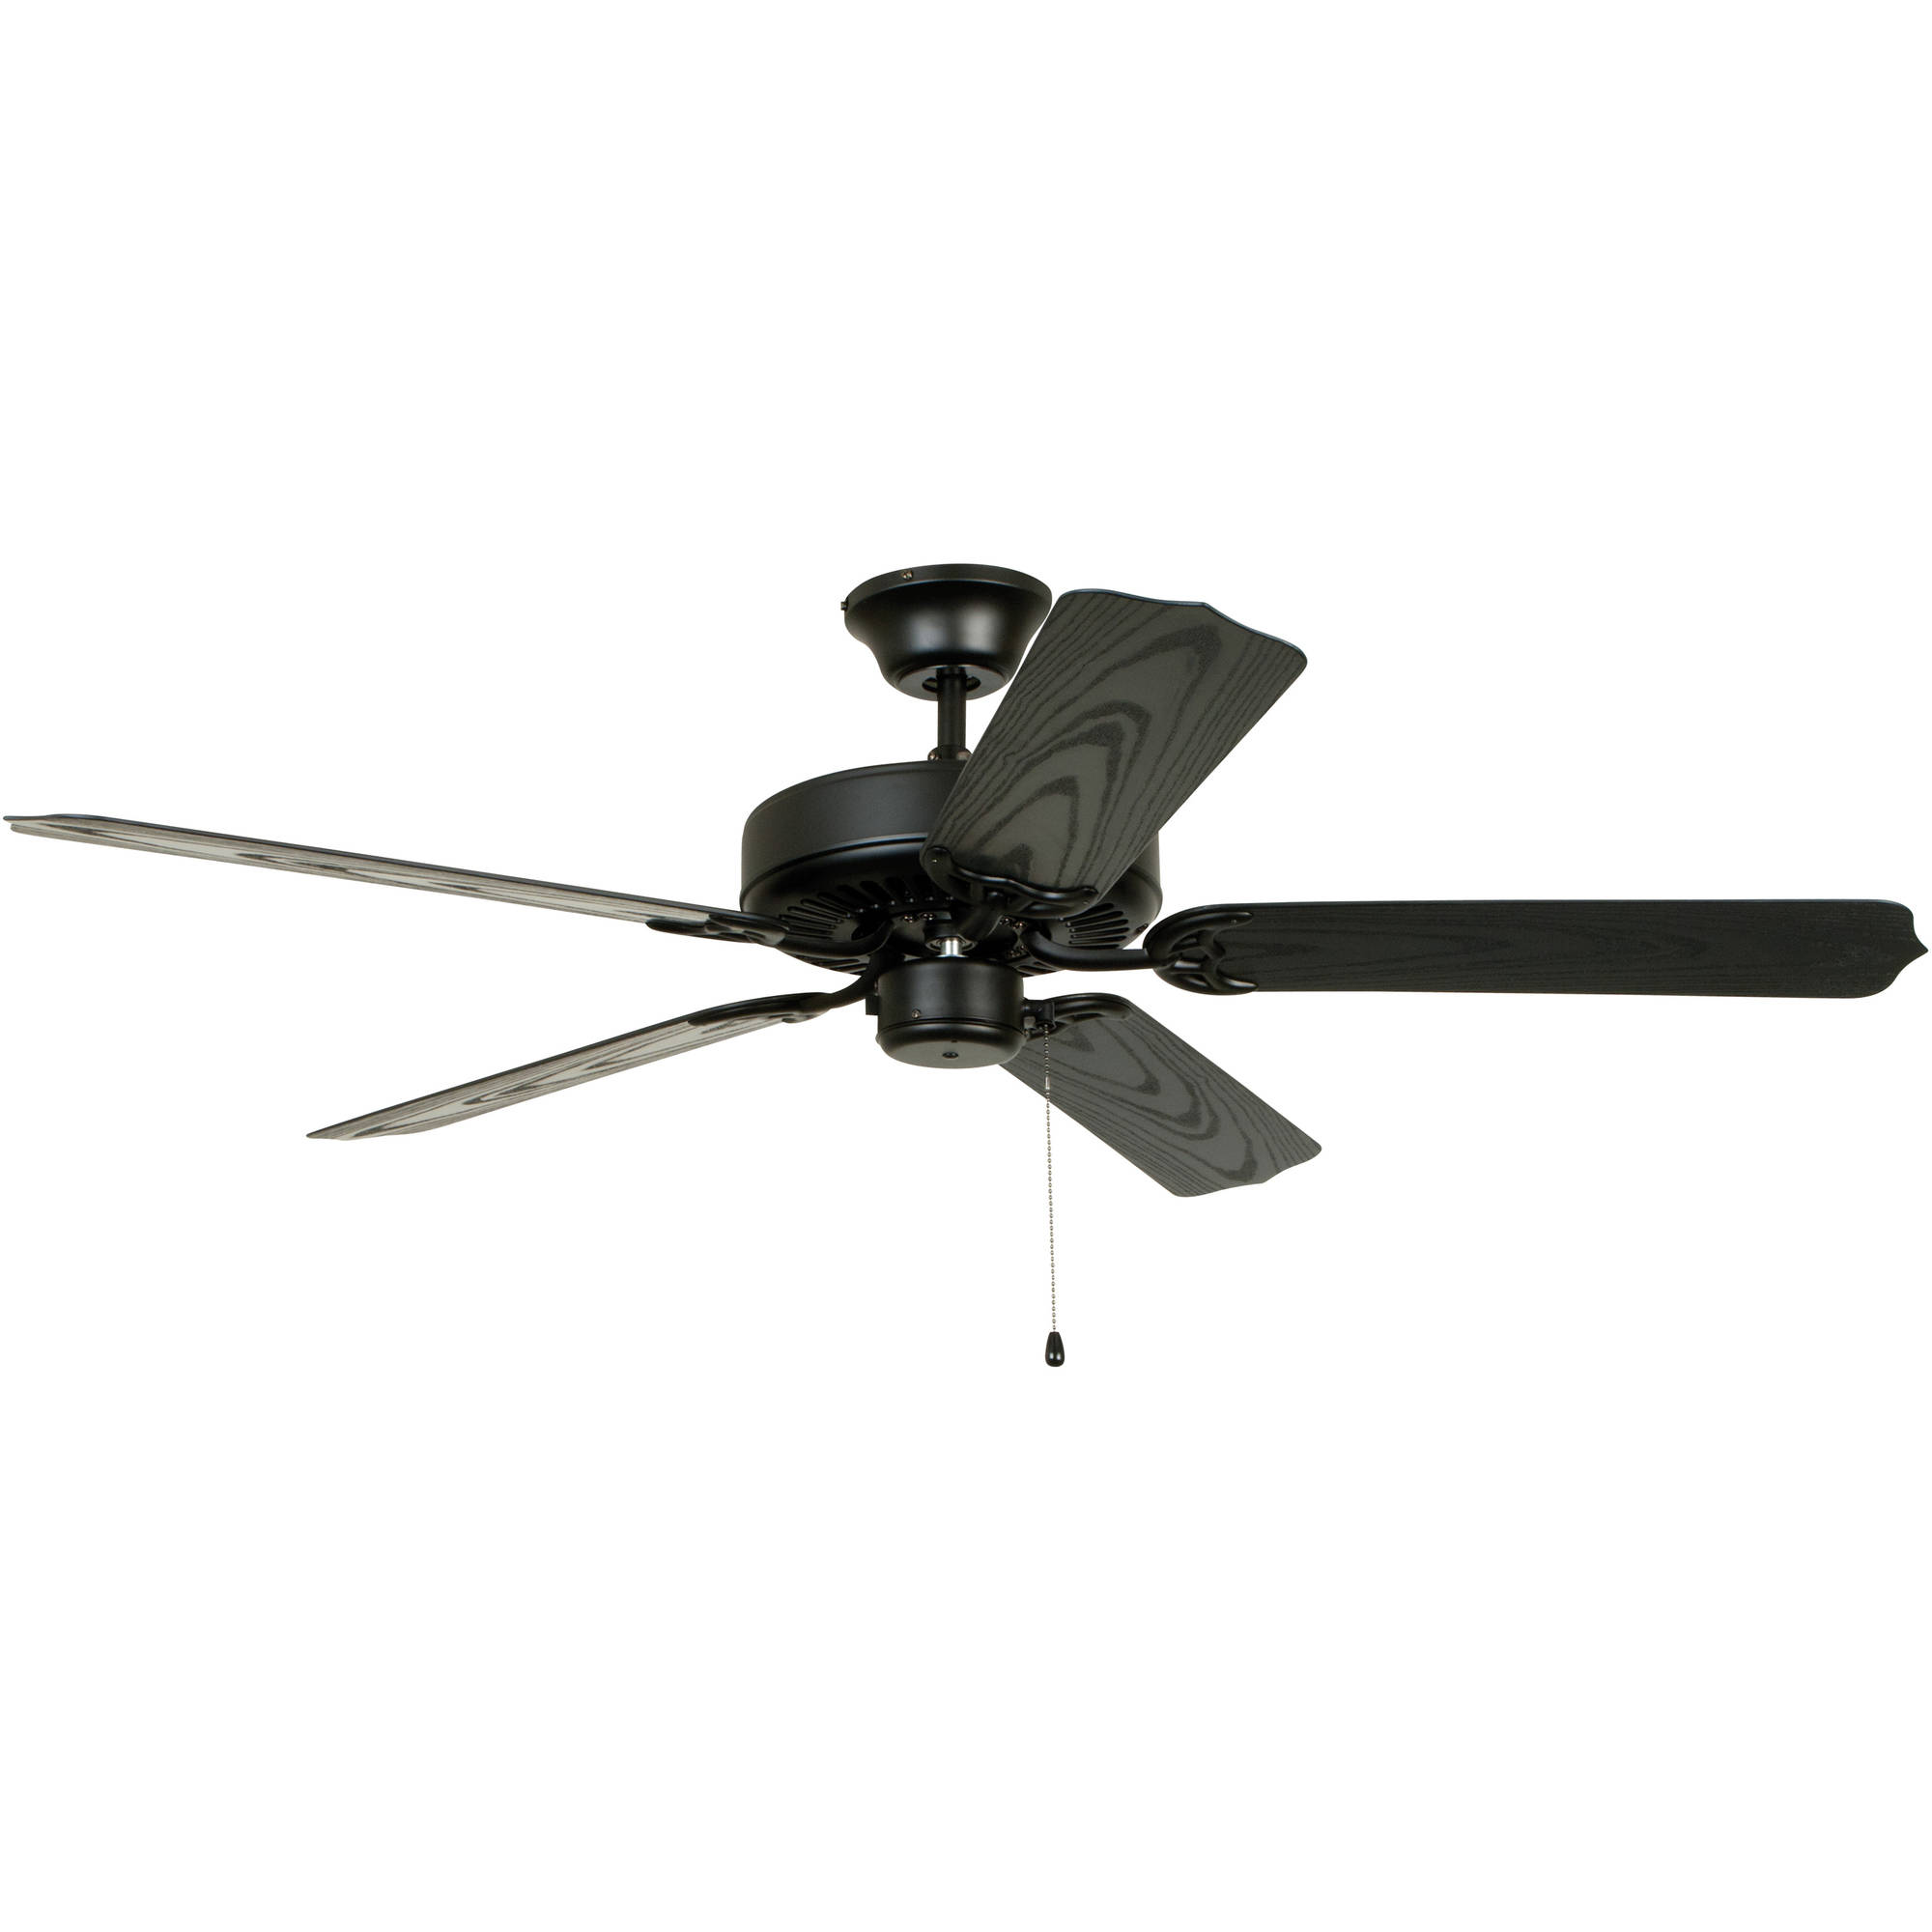 living remote depot lowes windmill full bedroom clearance ceiling home of fans with lights size fan led walmart without room menards remotes unique